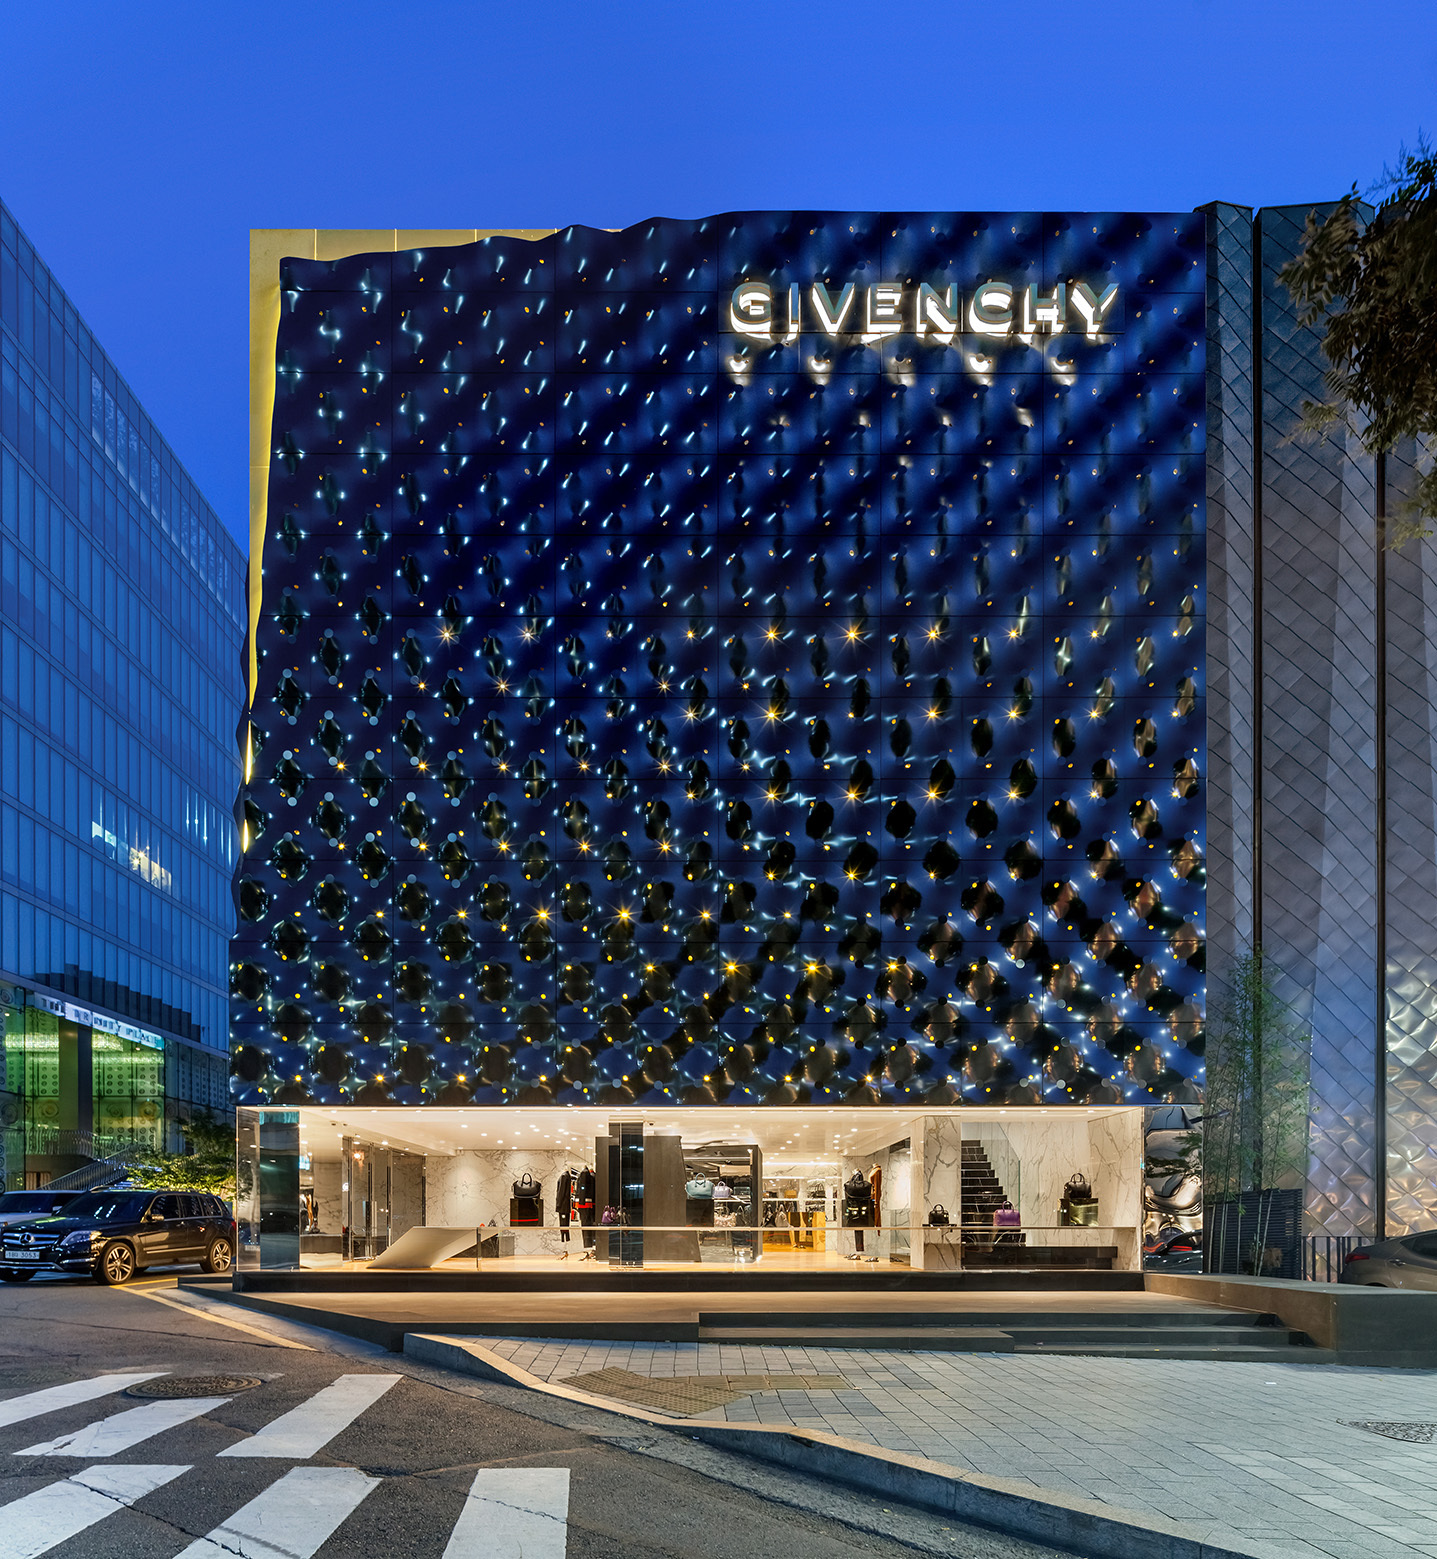 givenchy-flagship-store-in-seoul-piuarch-11